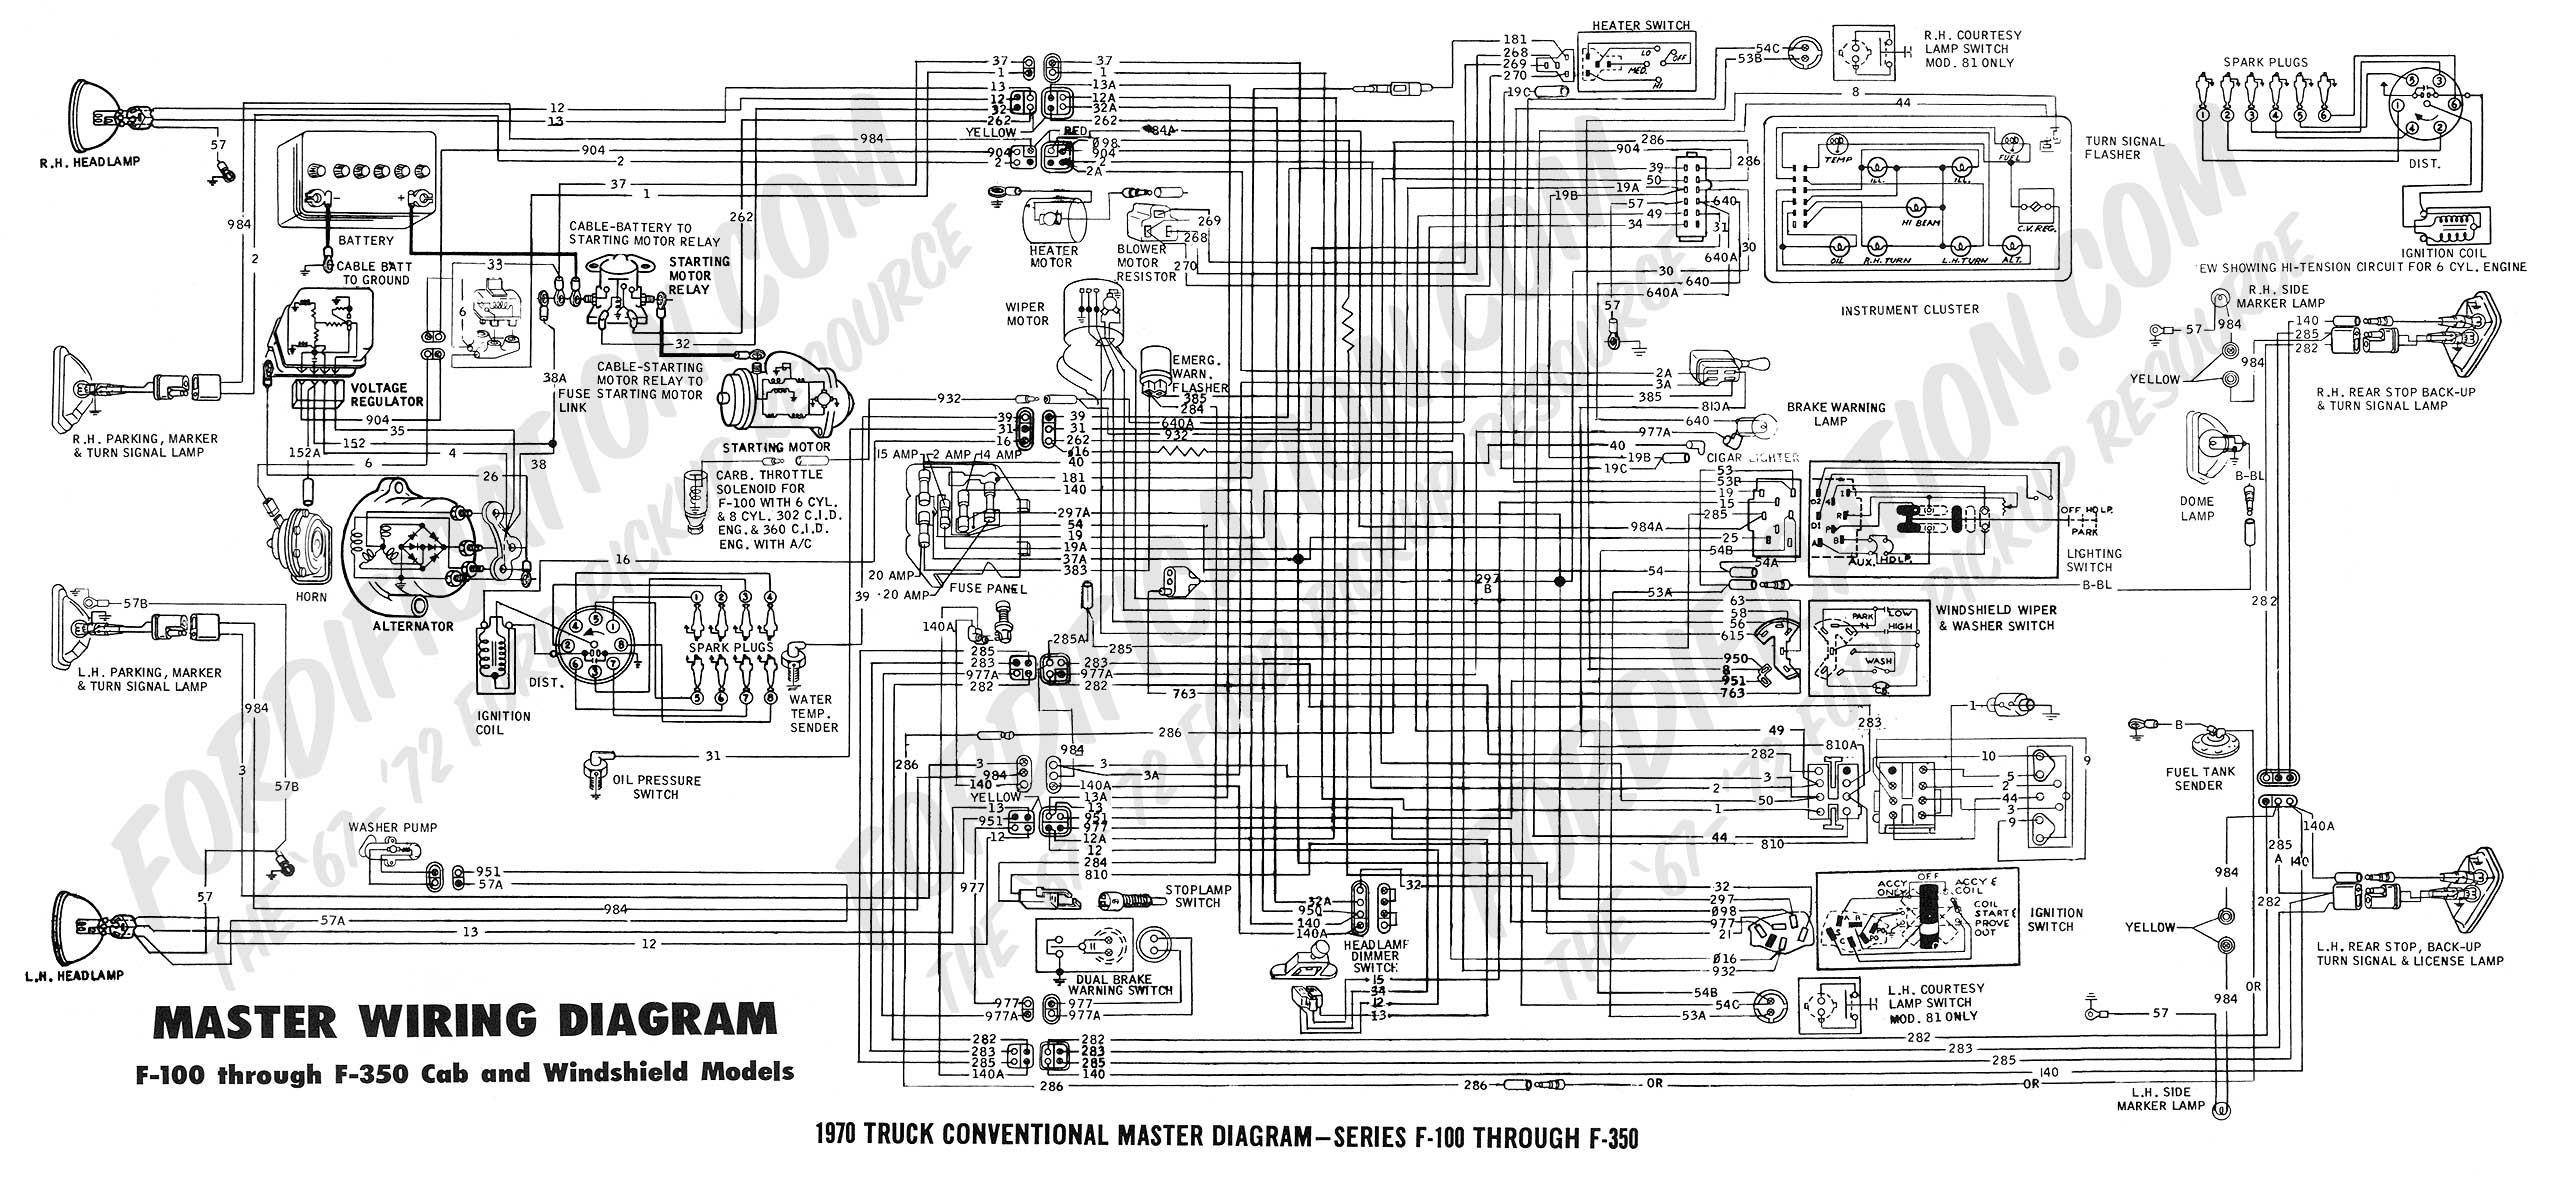 wiring diagram for ford wire center \u2022 1953 ford naa wiring-diagram ford truck technical drawings and schematics section h wiring rh fordification com wiring diagram for ford jubilee wiring diagram for ford naa tractor